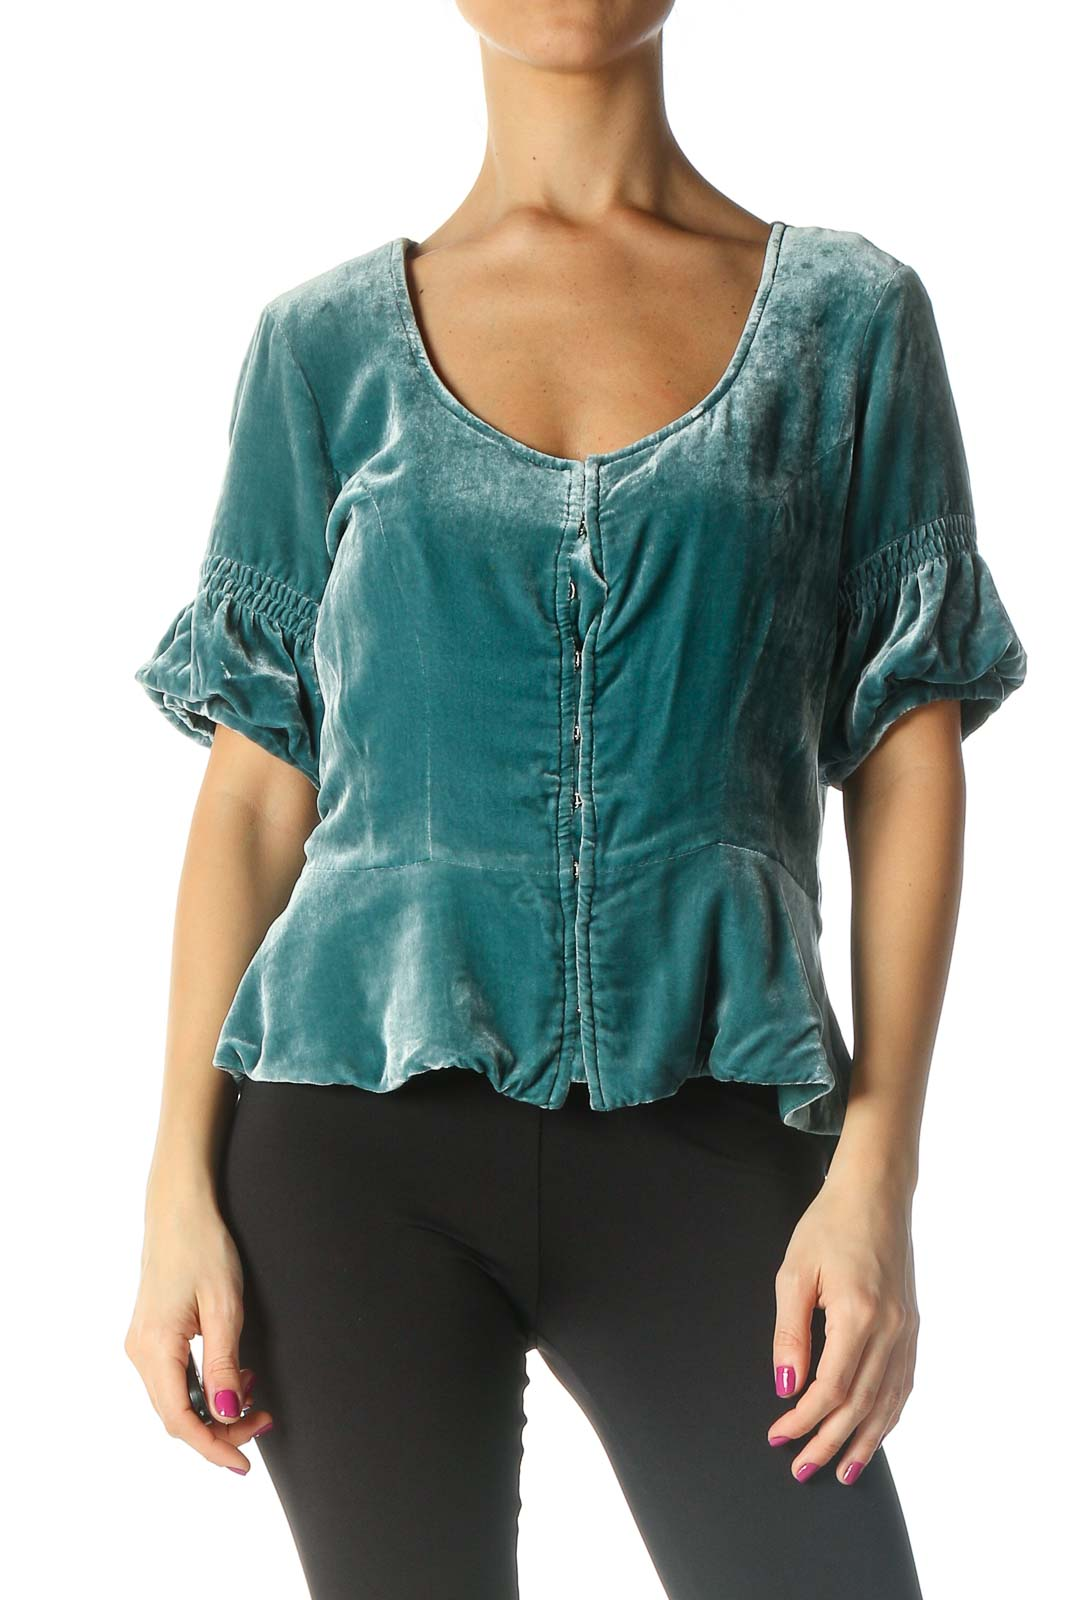 Green Solid Casual Blouse Front